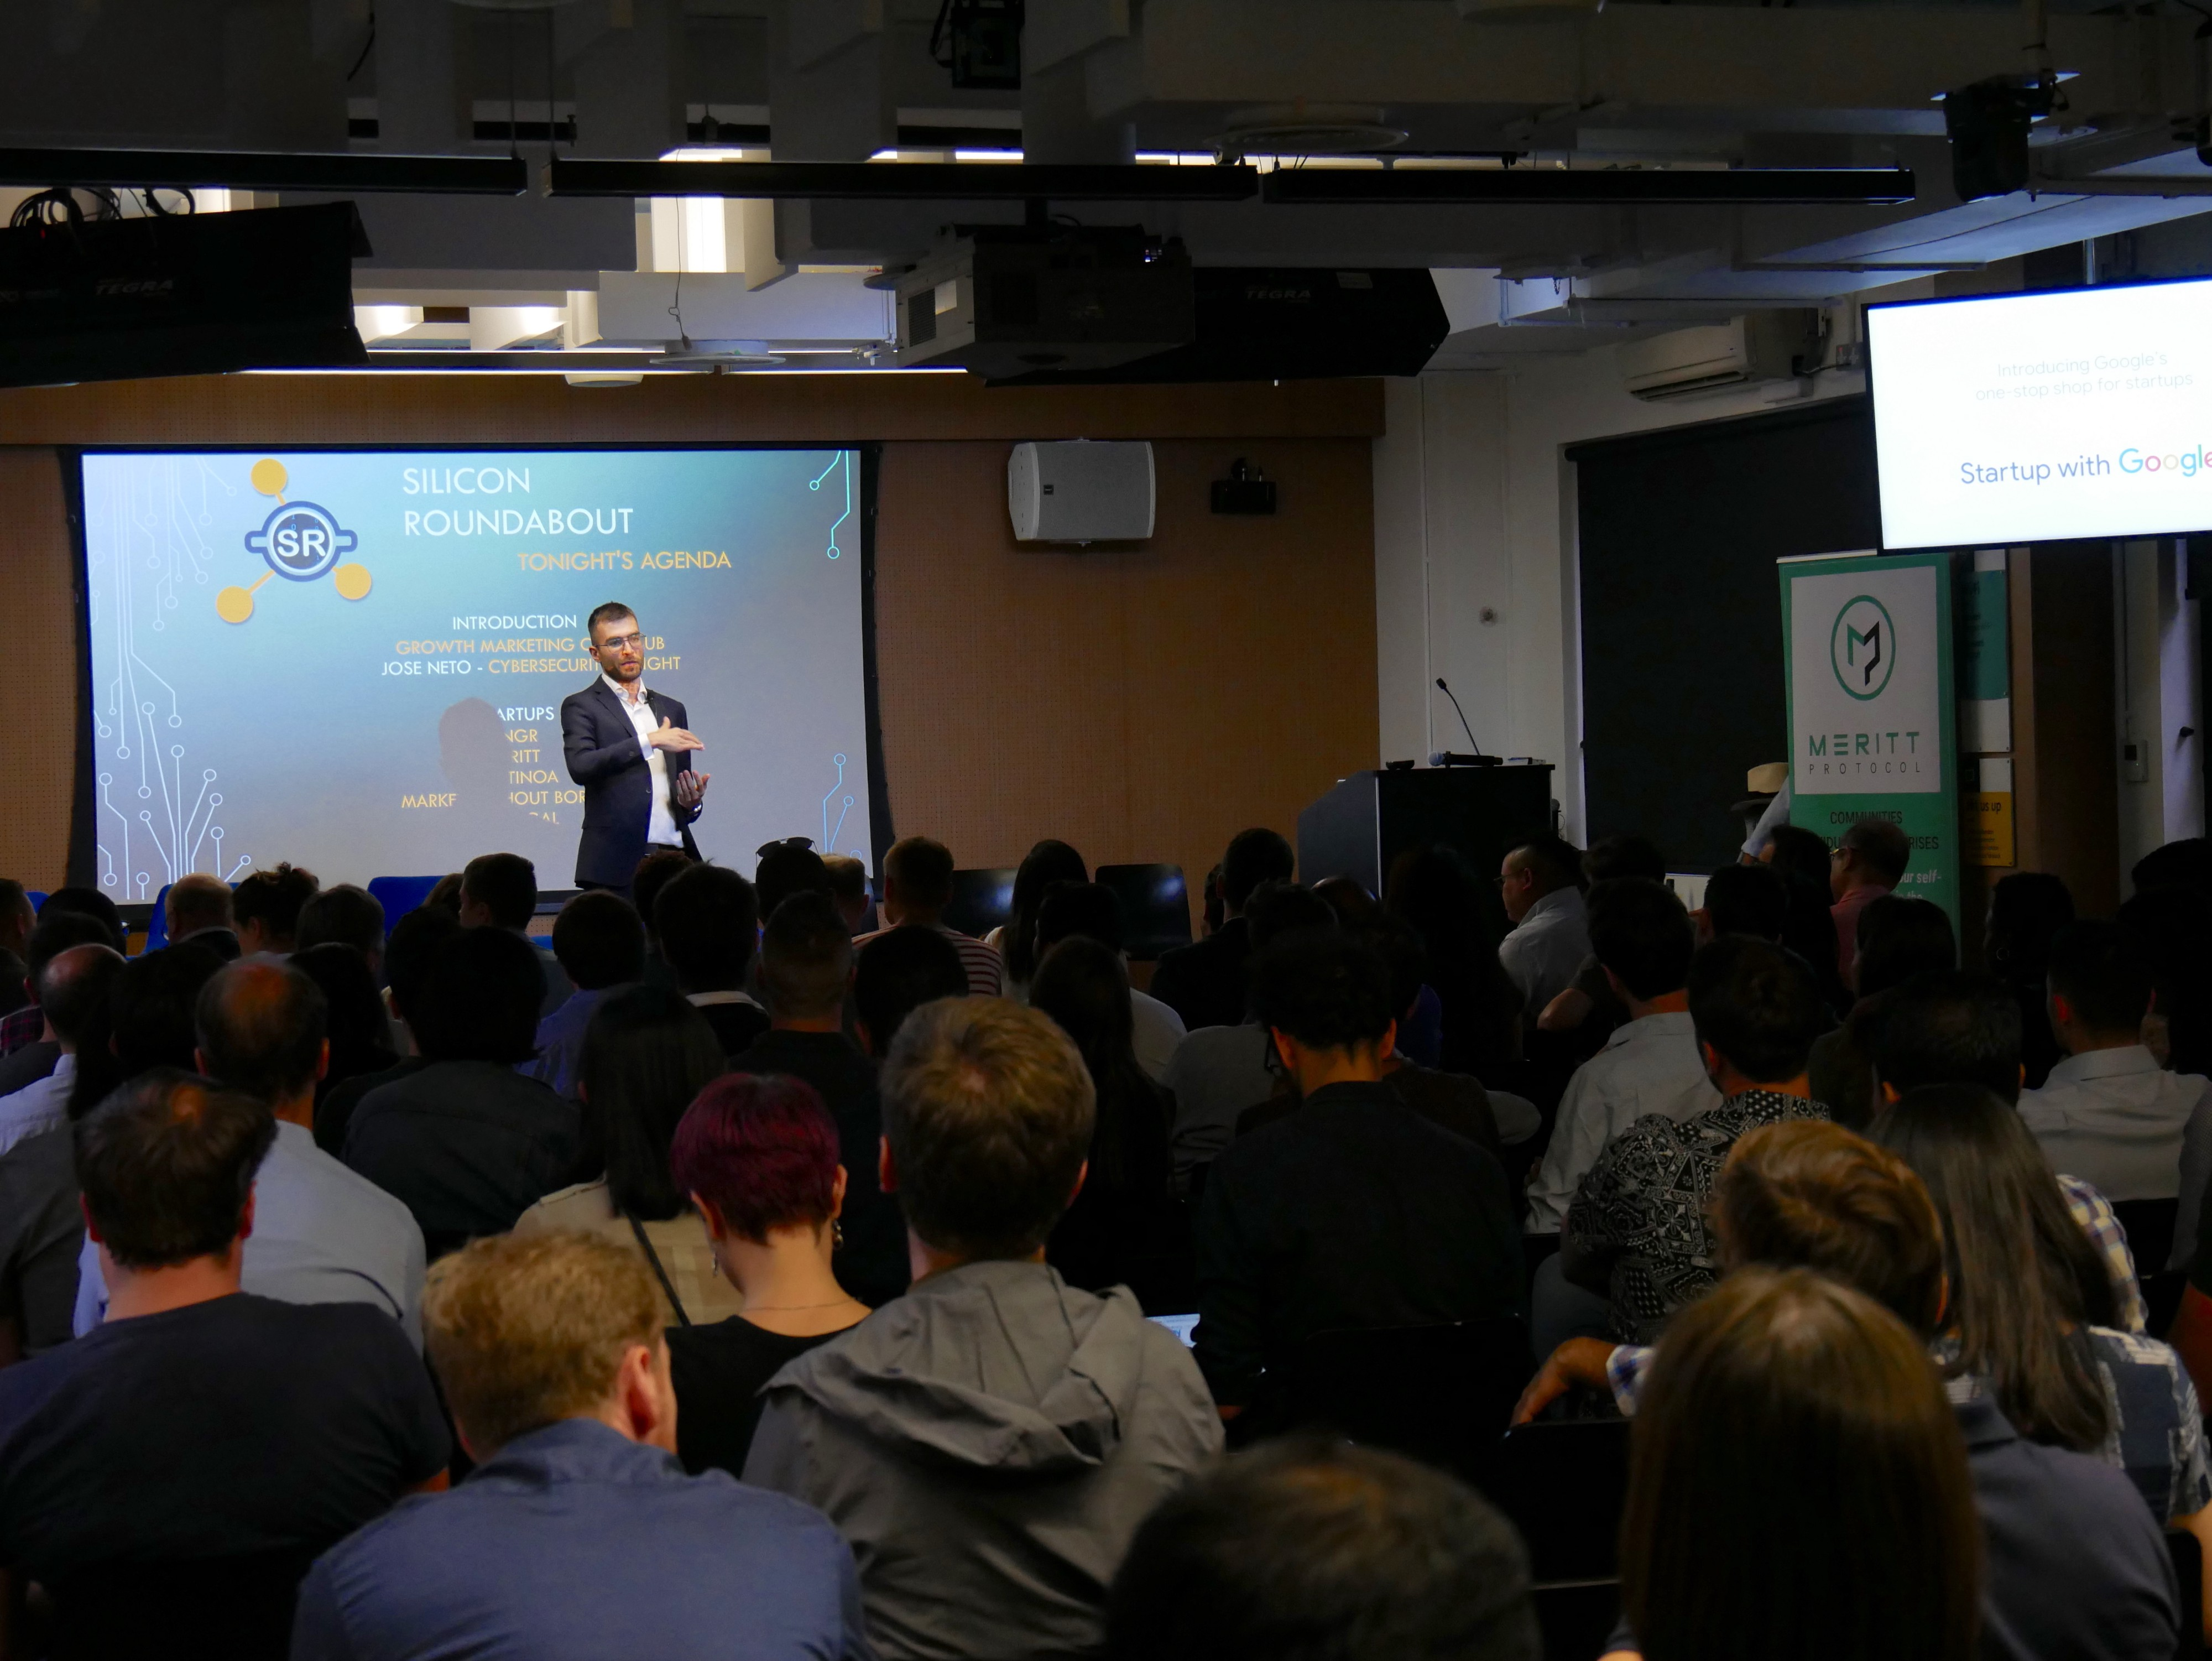 Startup pitching event in London by Silicon Roundabout